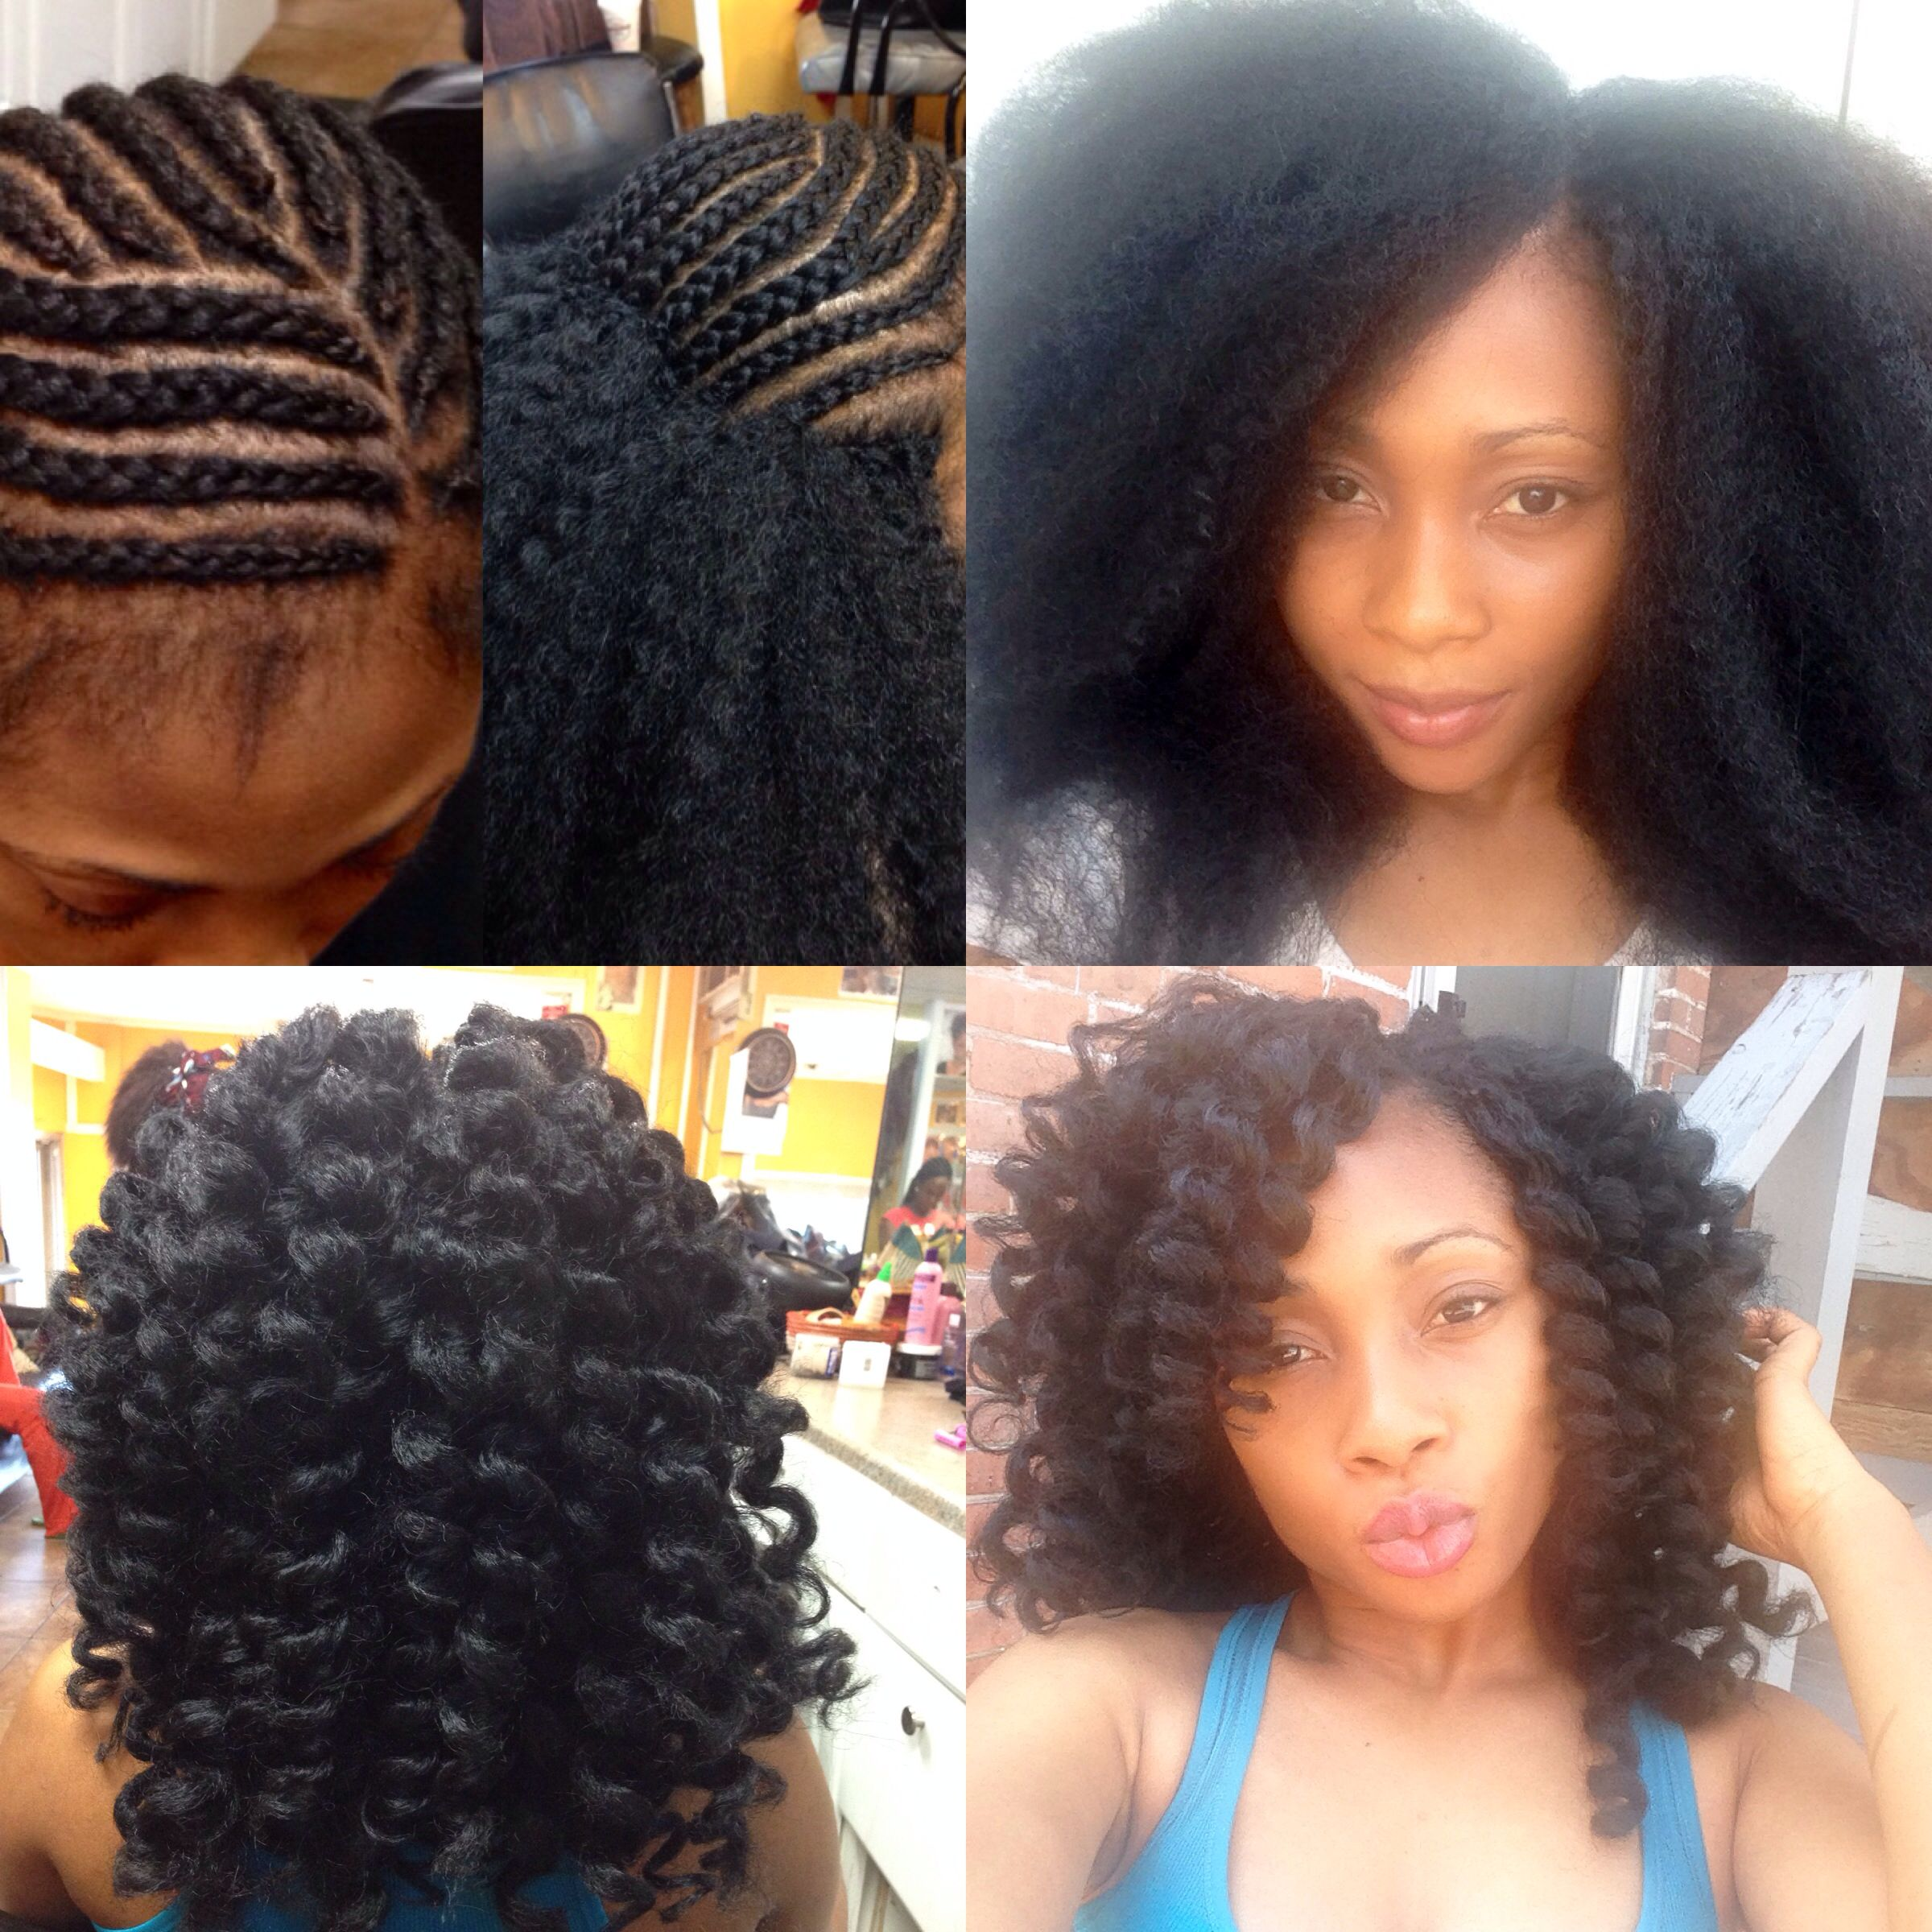 crochet braids with marley hair styles crochet braids with marley hair hair 2 1577